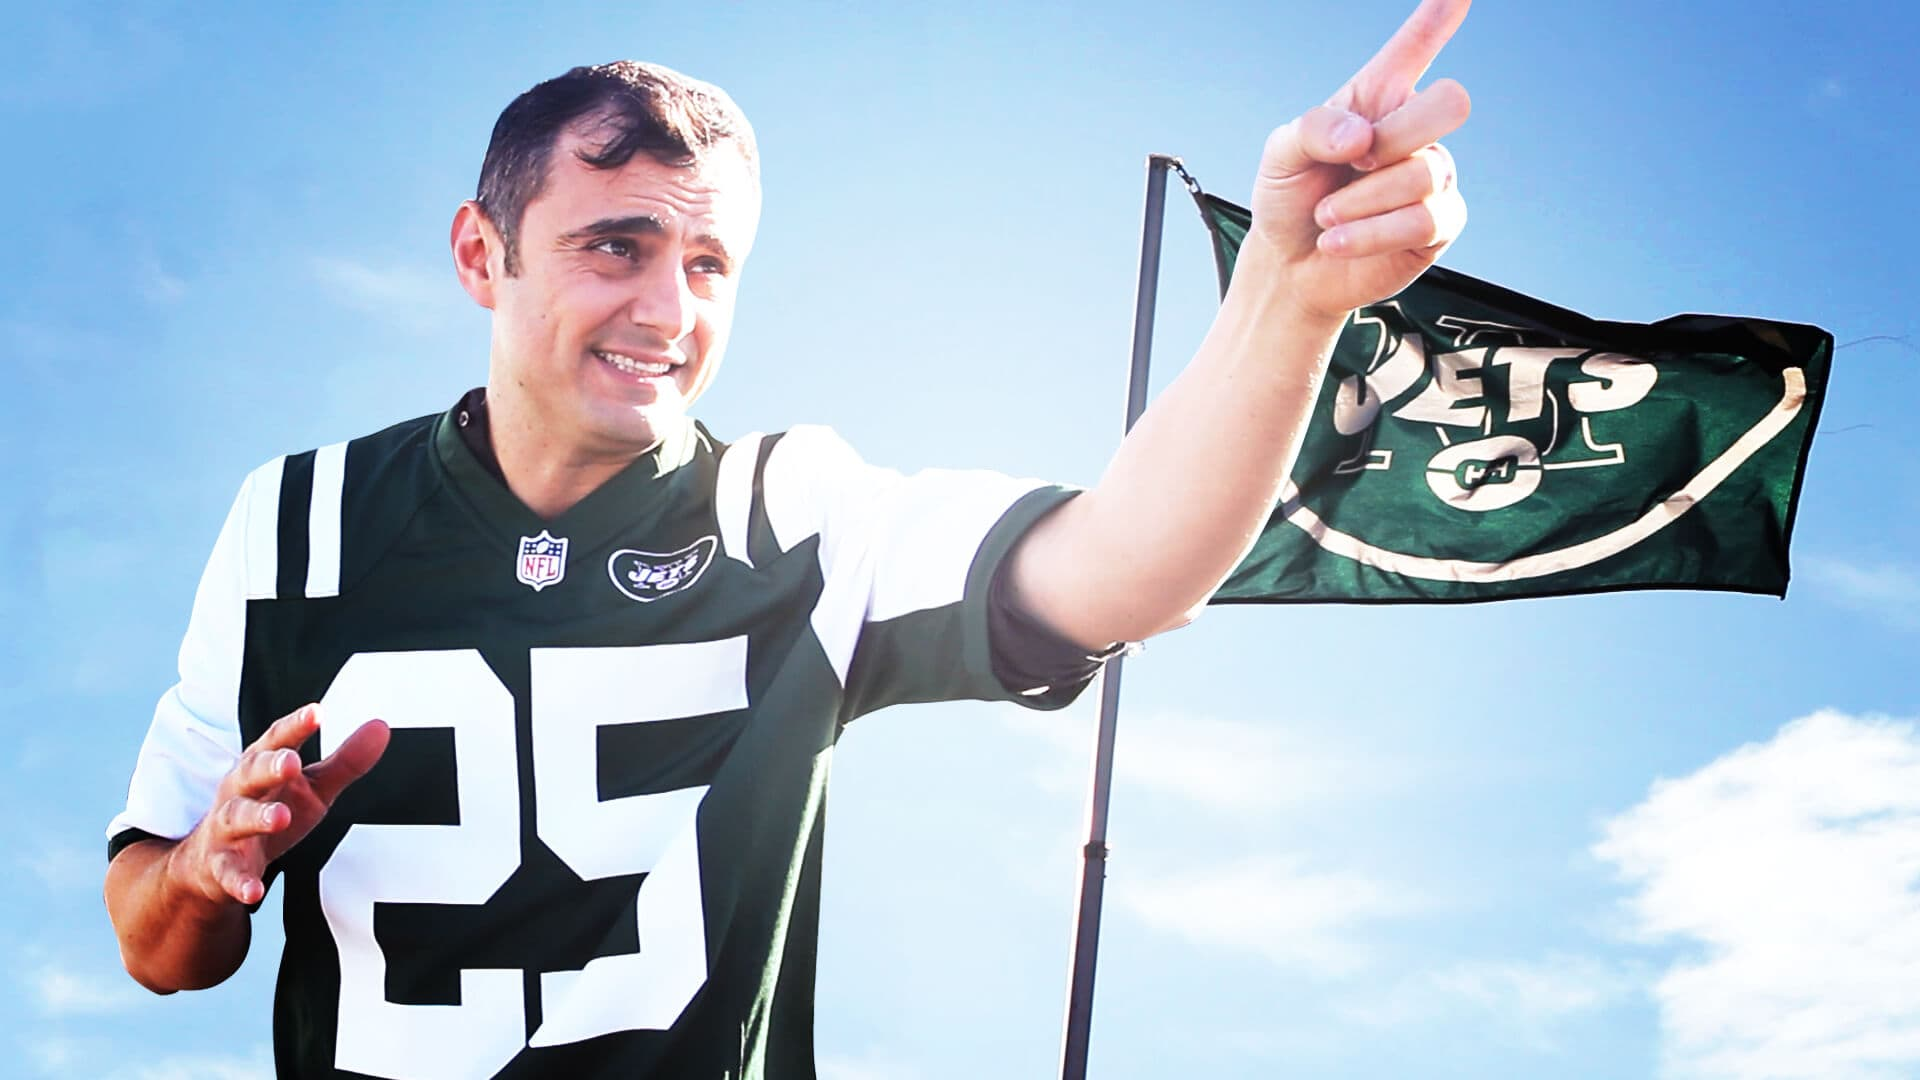 Gary Vaynerchuk and the New York Jets